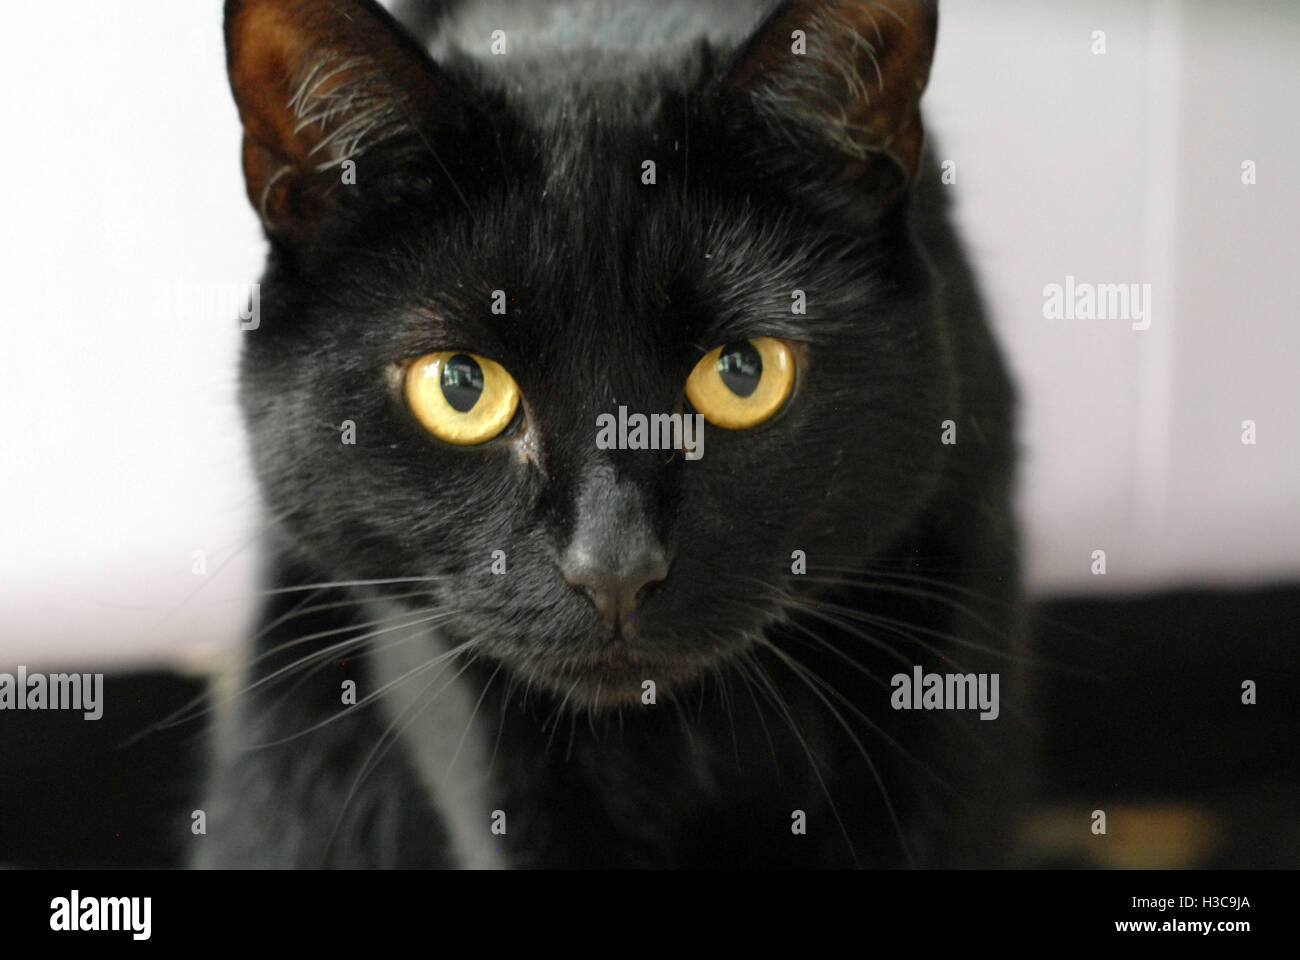 Black cat with yellow eyes, head closeup - Stock Image